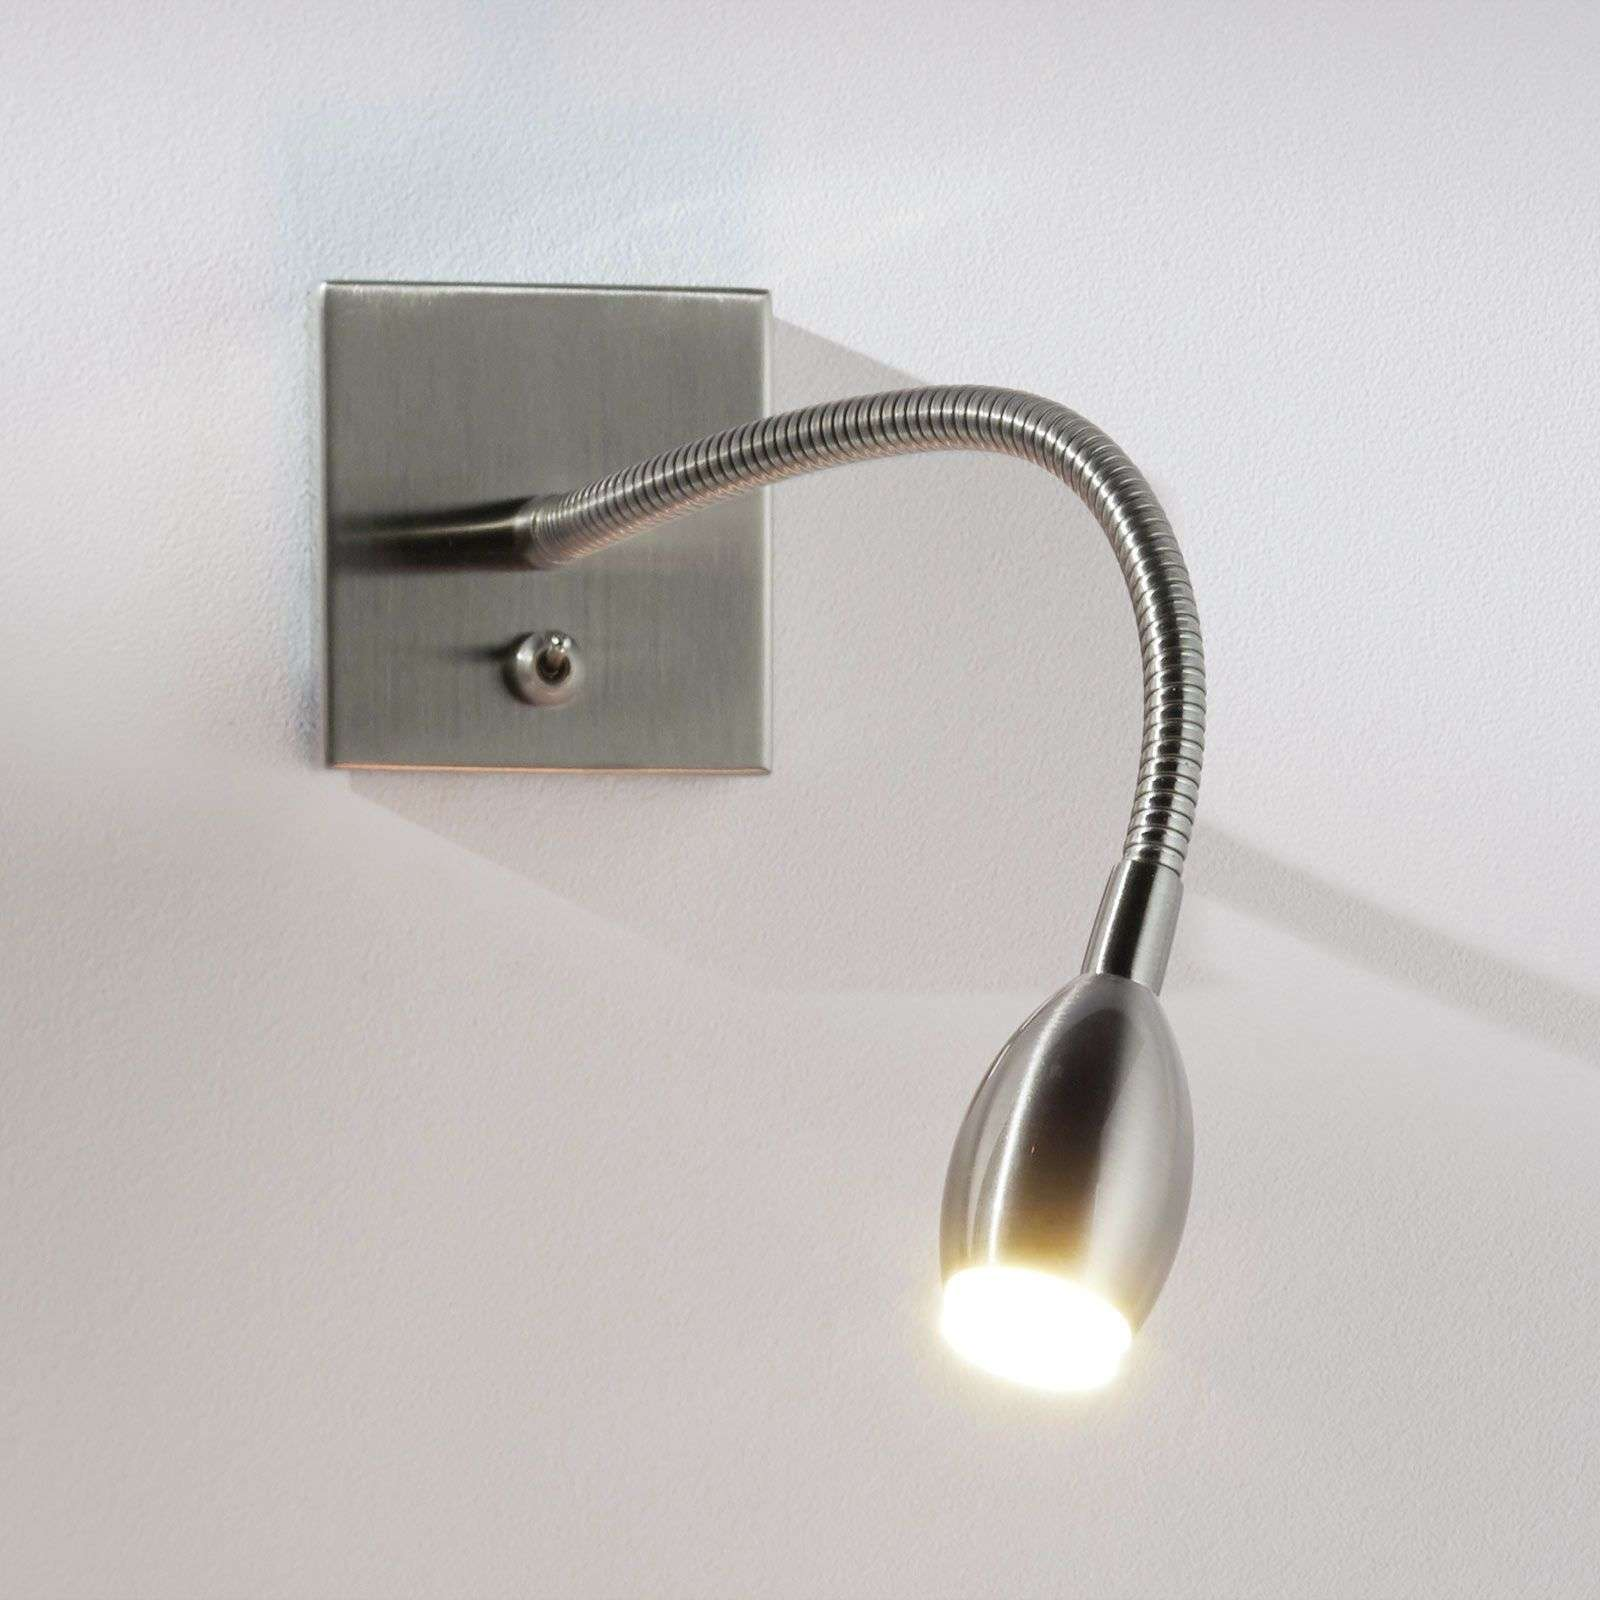 Applique LED PILAR avec bras flexible, nickel